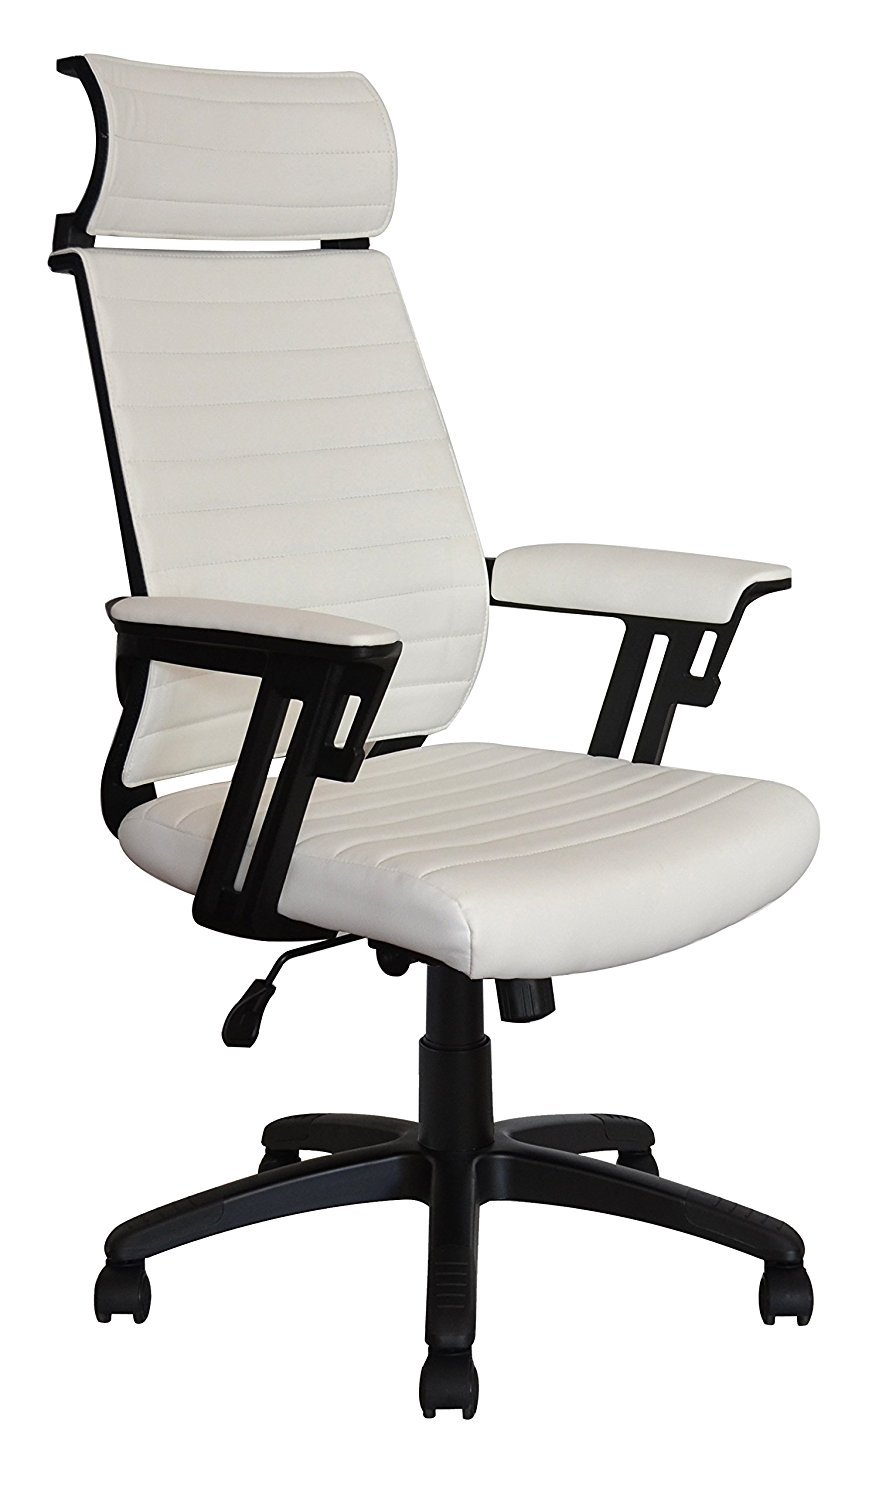 Executive contemporary office chair with attached headrest